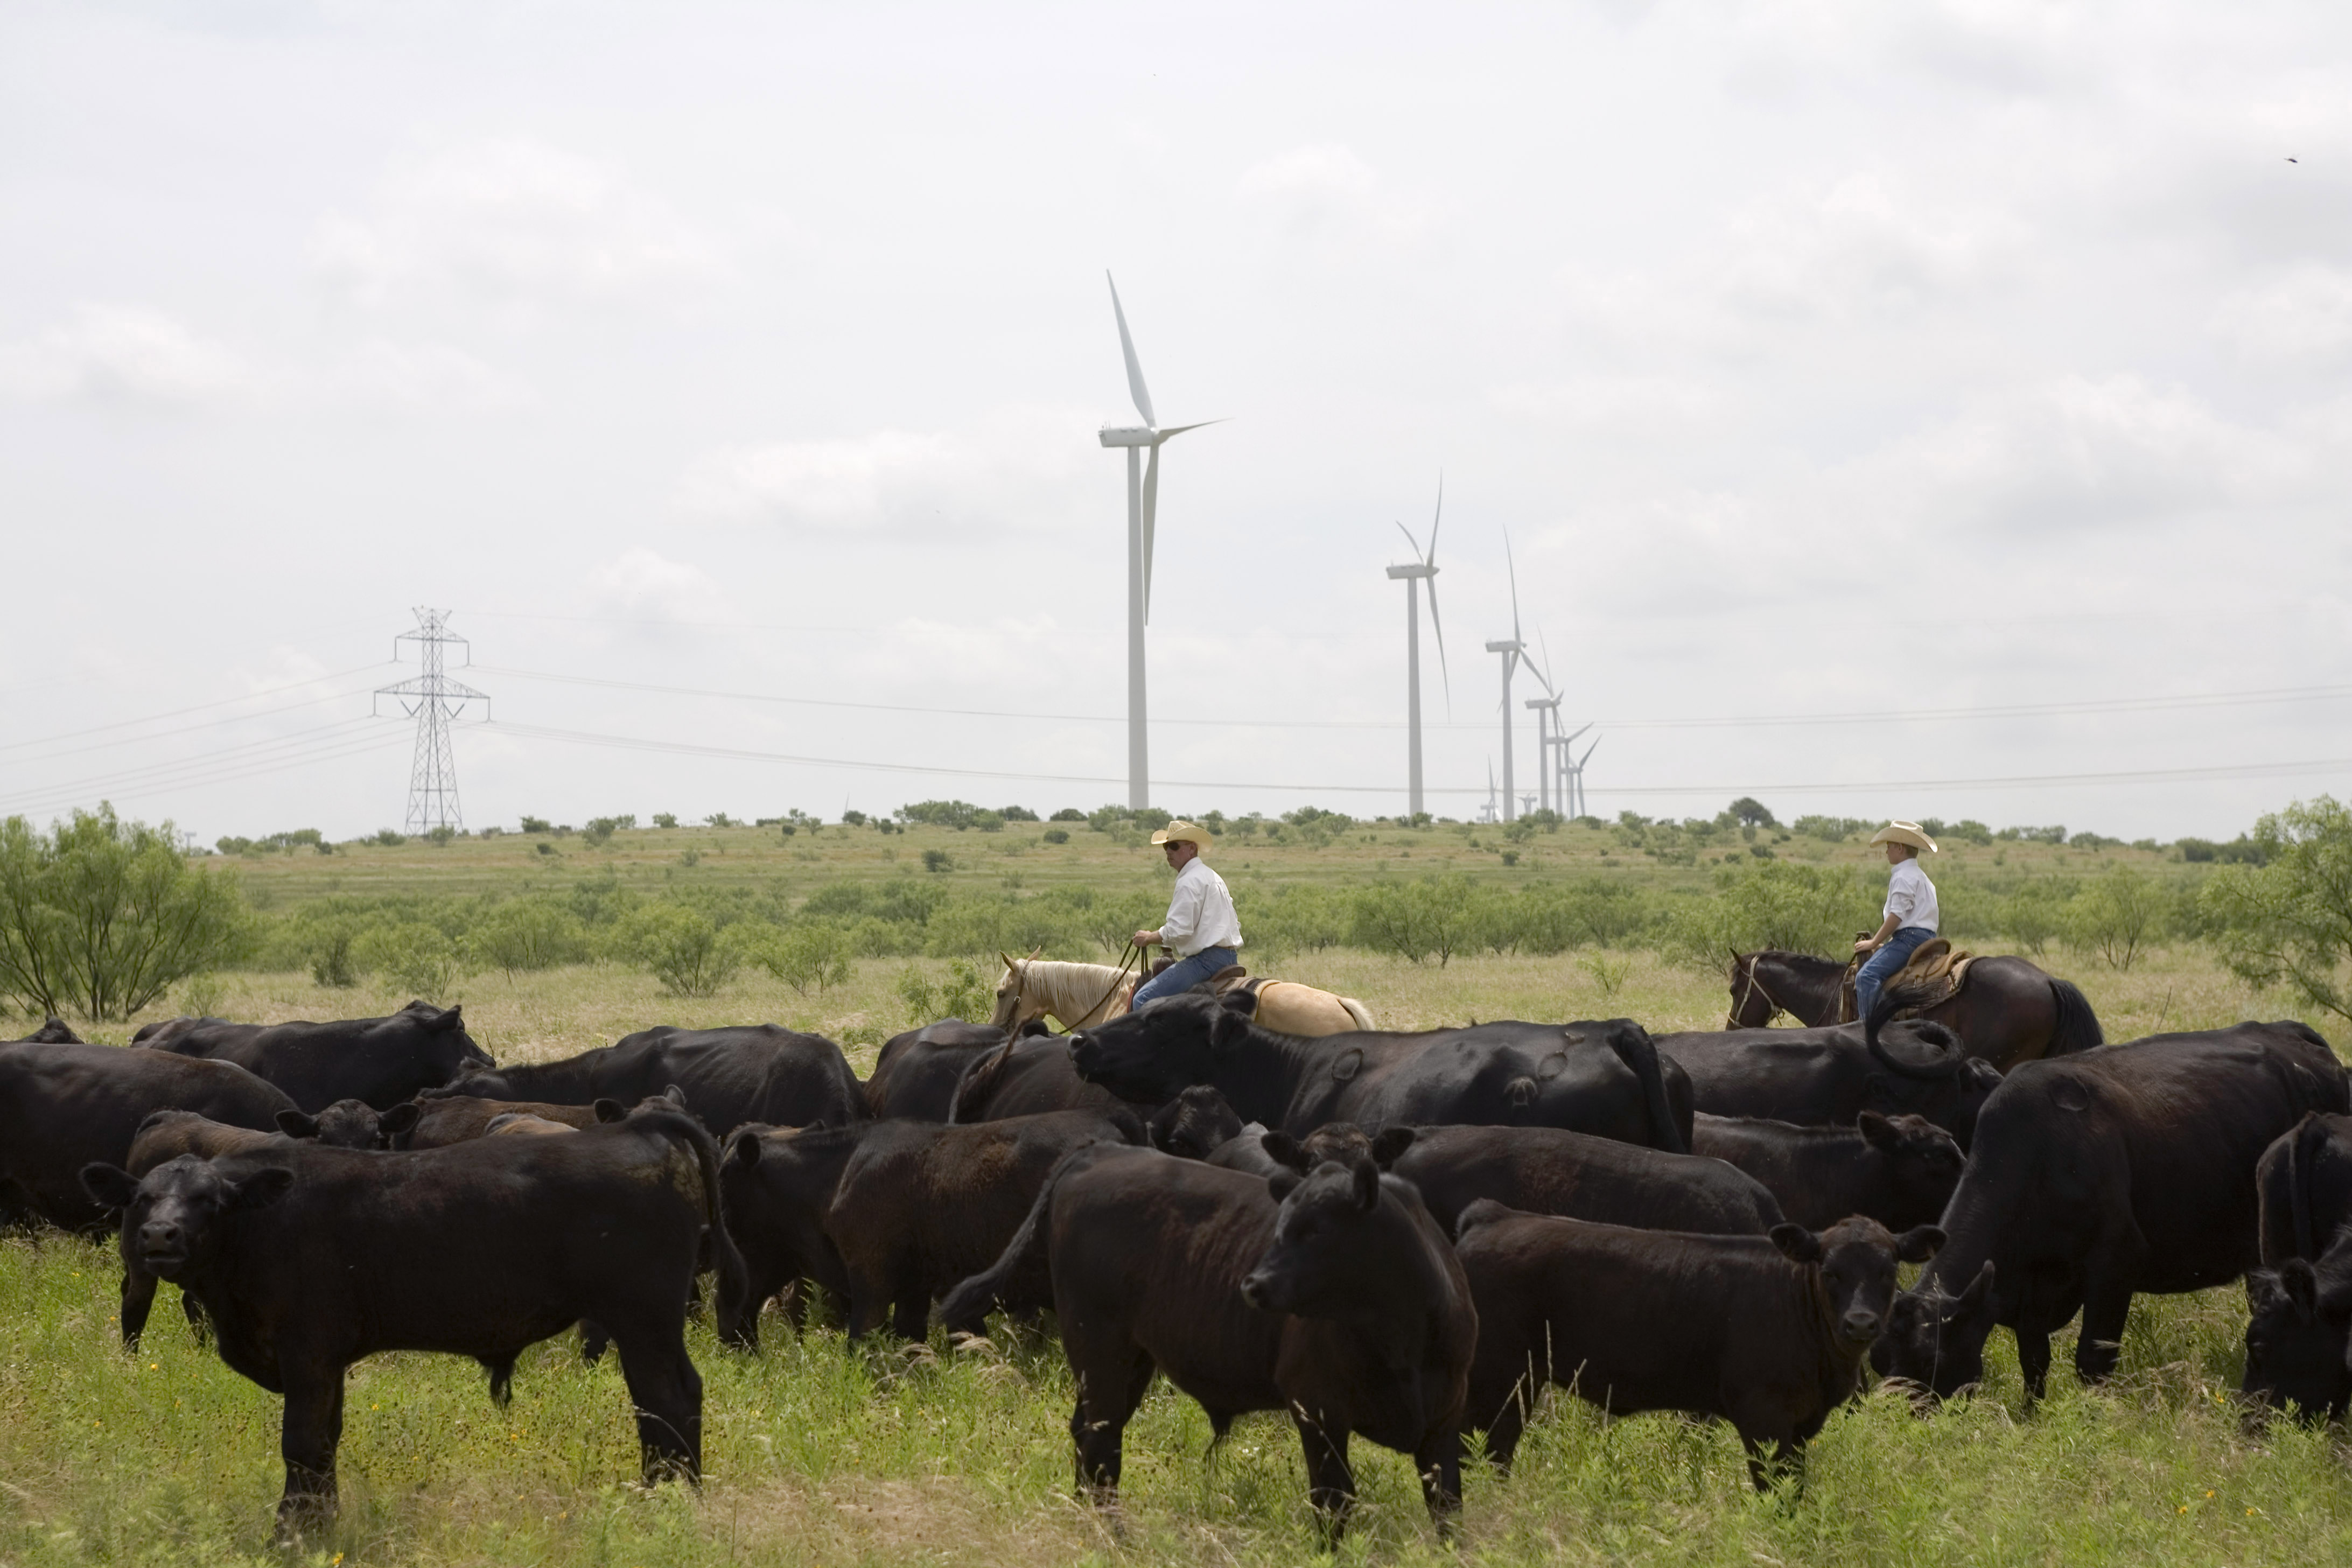 Ranchers herd cattle near the Lone Star Wind Farm north of Abilene, Texas. The state has immense potential for integrating renewable energy on its grid since its wind and sunlight complement each other so well.